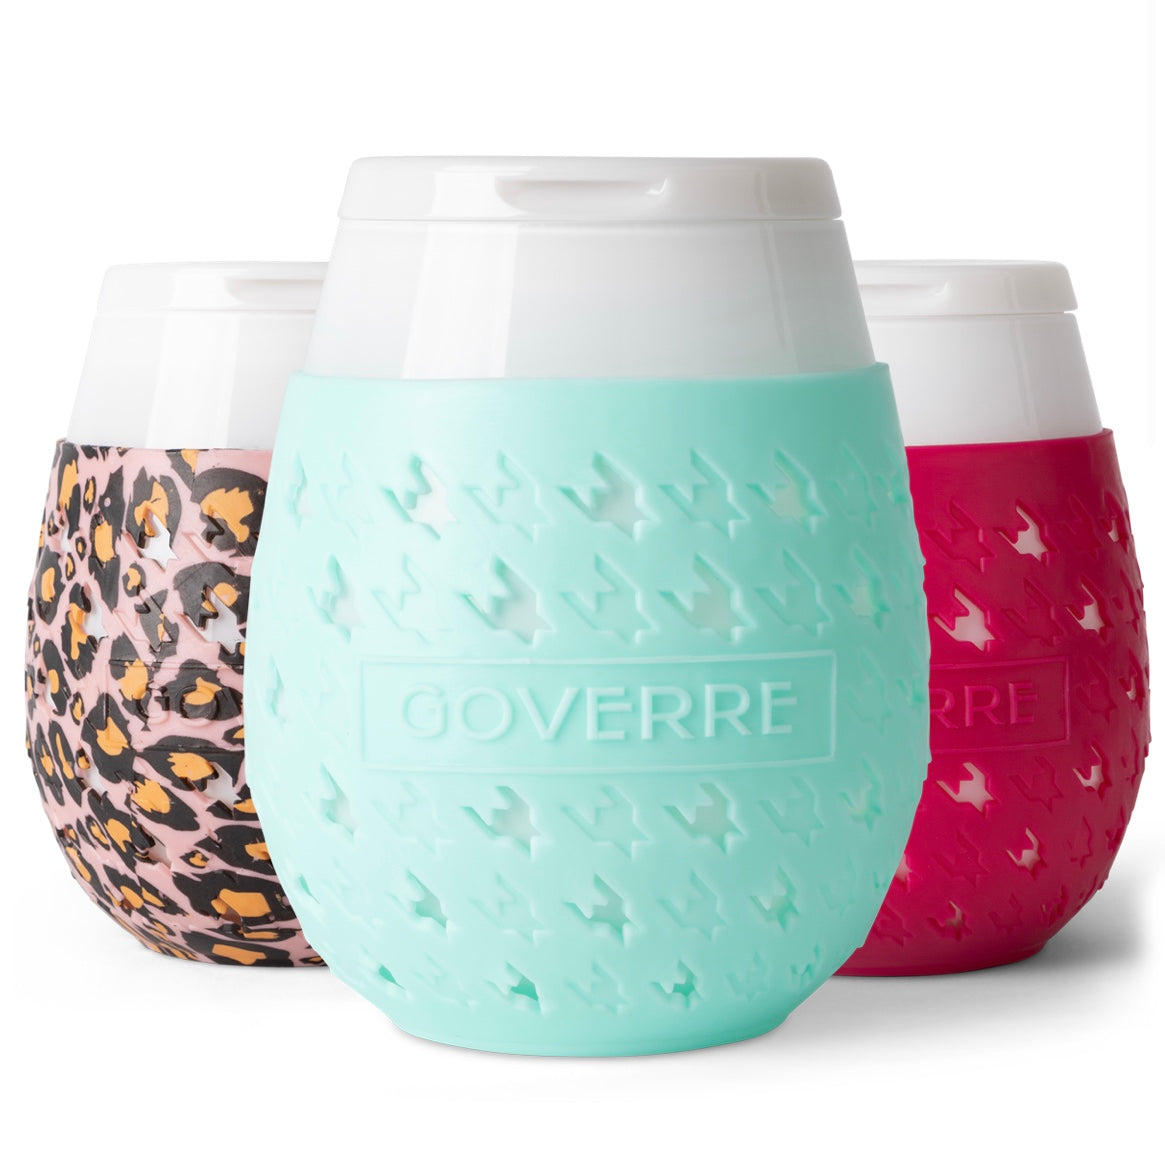 Goverre - Modern To-Go Cup for Wine